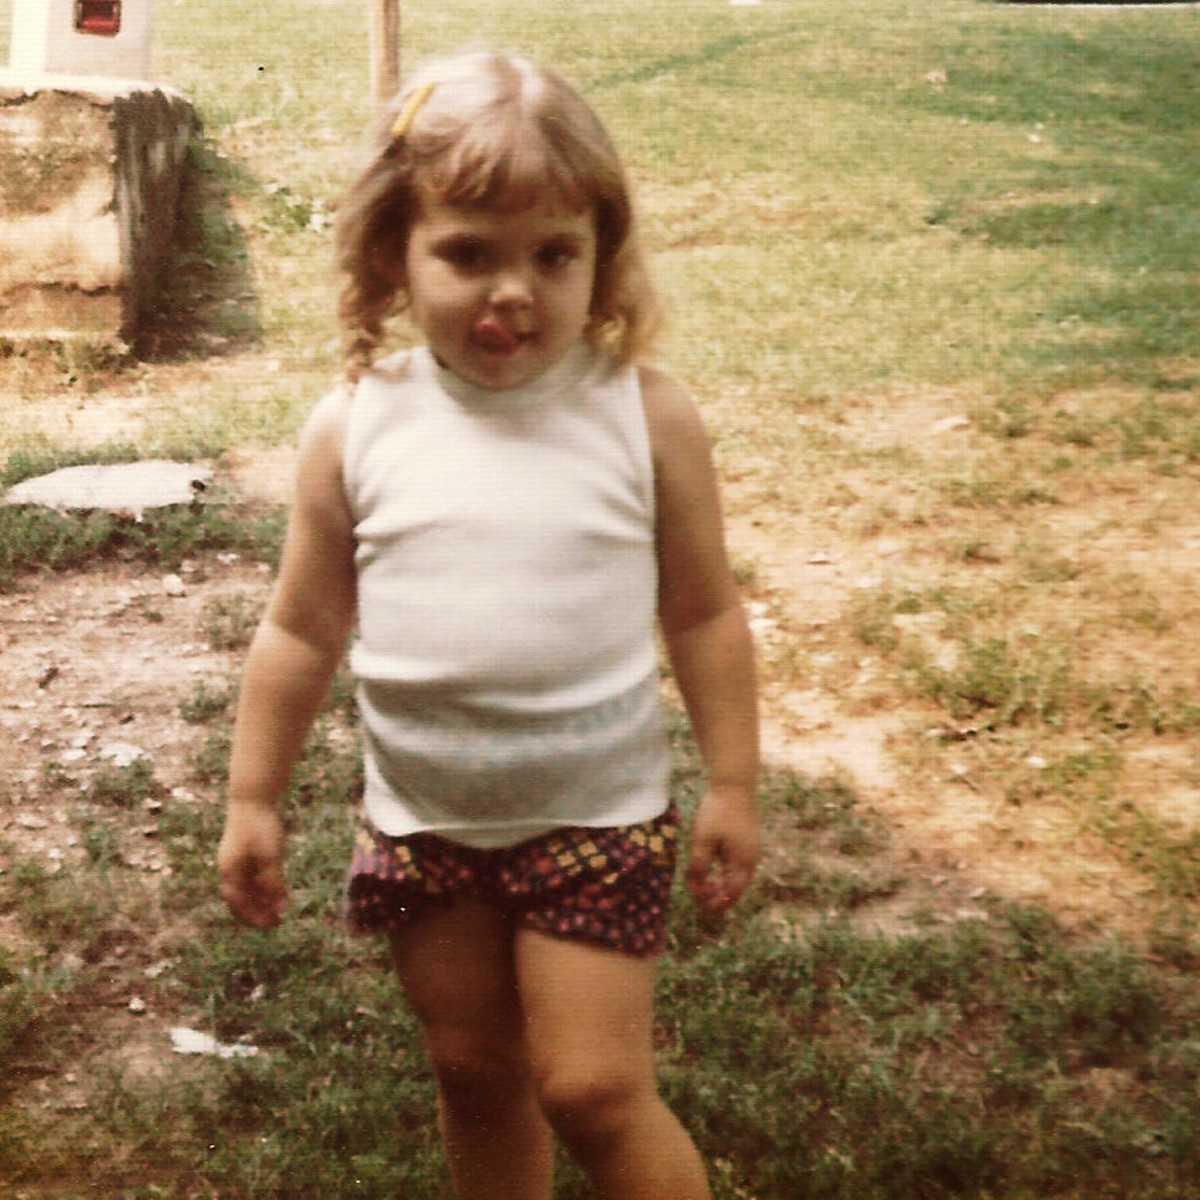 """My cousin grew up with the nickname """"Pudge"""" and even at 30 people called her that."""